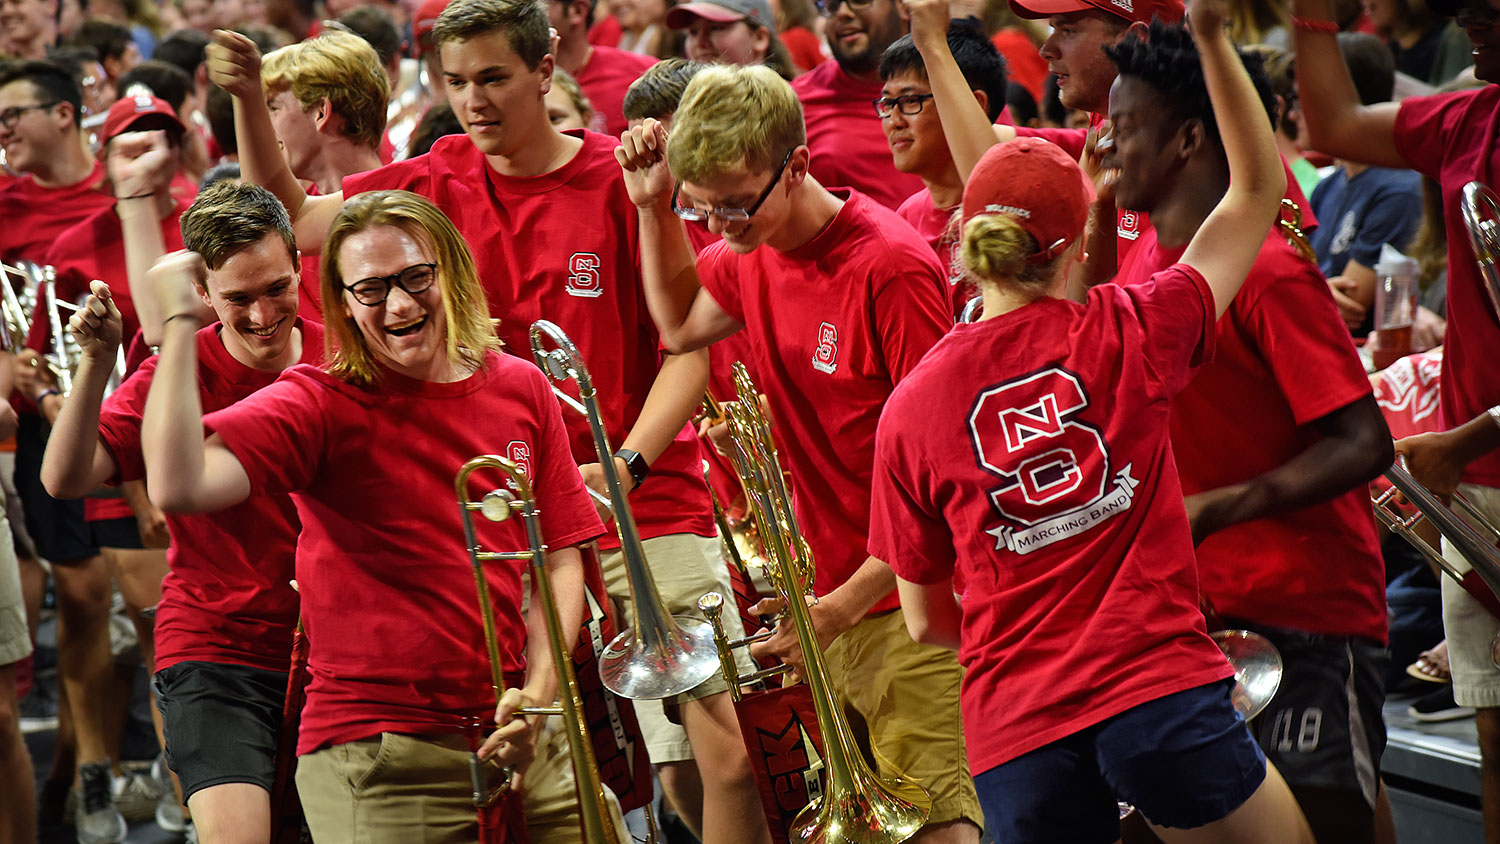 NC State marching band